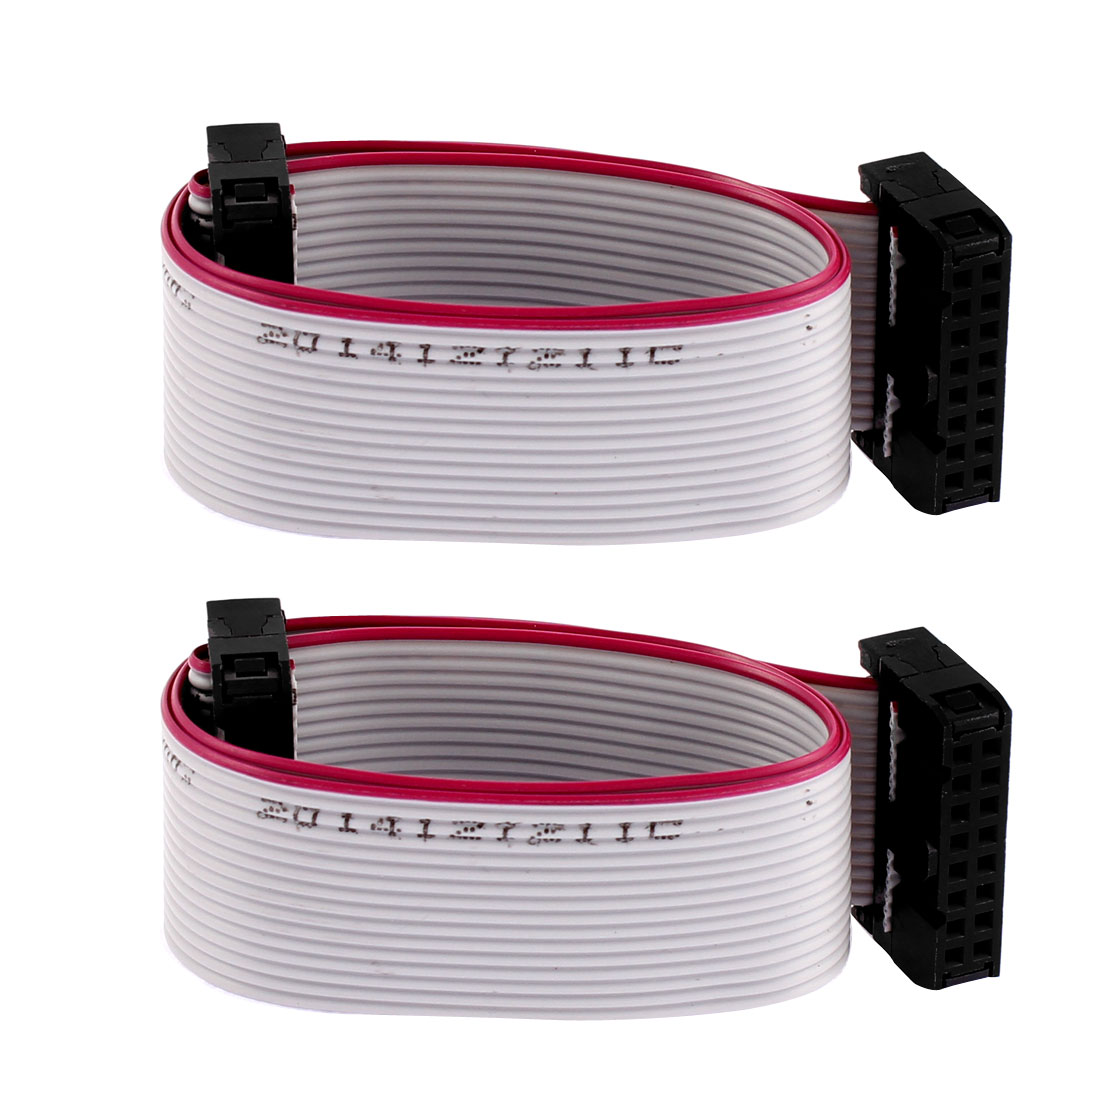 2.54mm Pitch 16 Pin 16 Wire IDC Connector Flat Ribbon Cable 30cm Long 2 Pcs